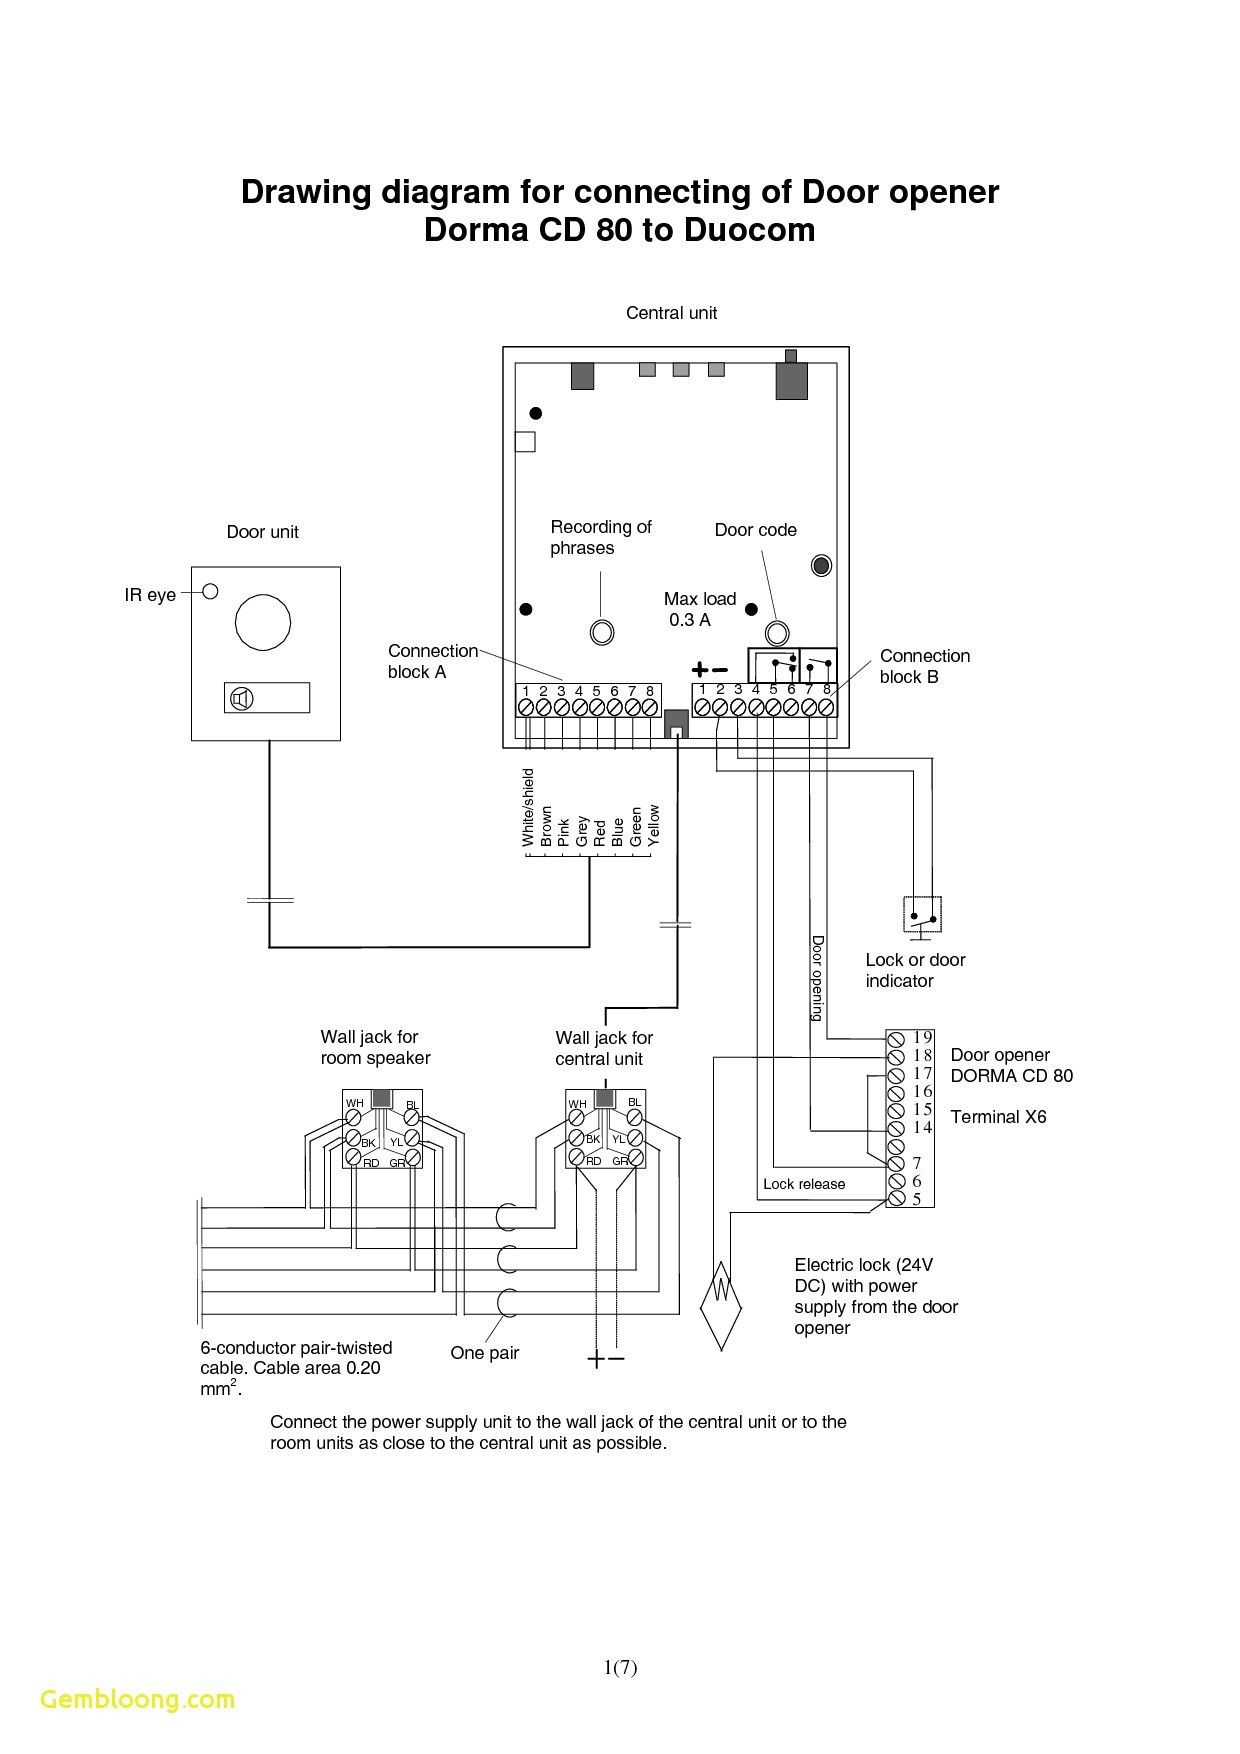 Unique Wiring Diagram For A Garage Consumer Unit Diagram Diagramtemplate Diagramsample Electronica